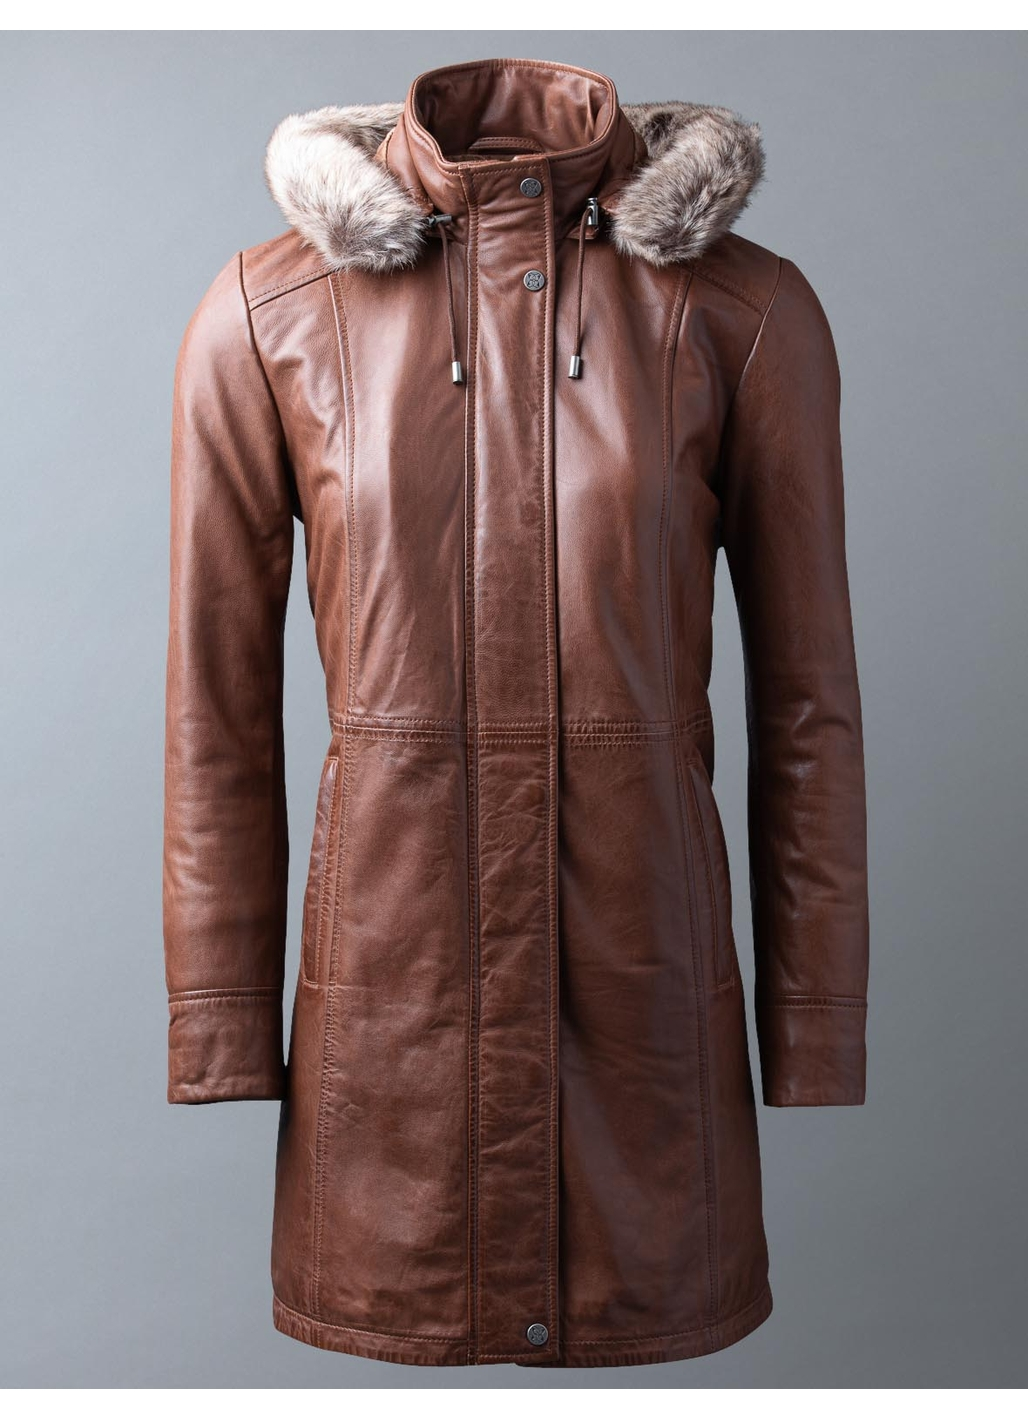 Ravensworth Long Leather Coat in Tan